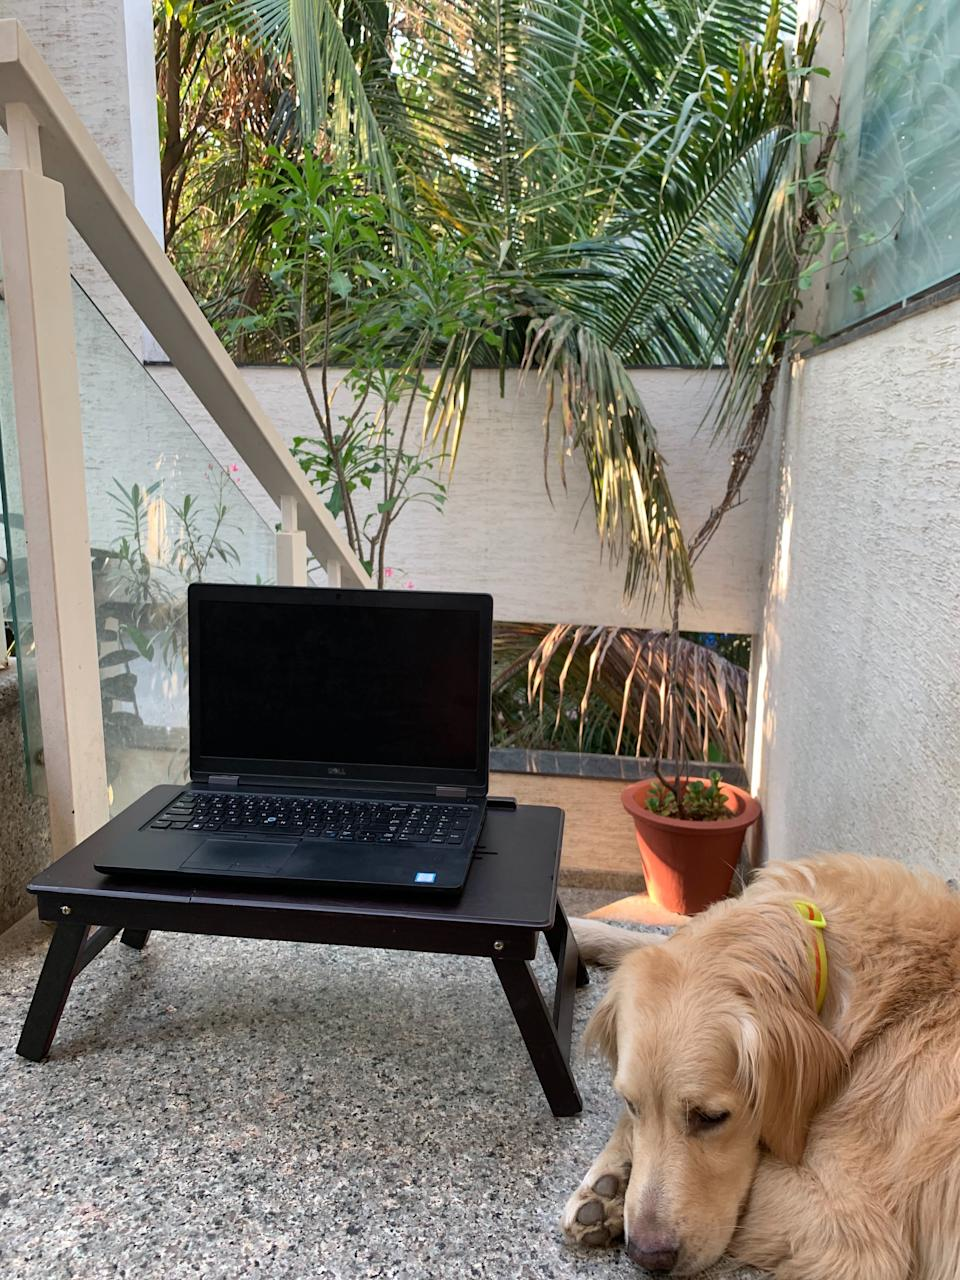 Bring your pet to keep you company while you work Photo credit: Kezhia Sharieff